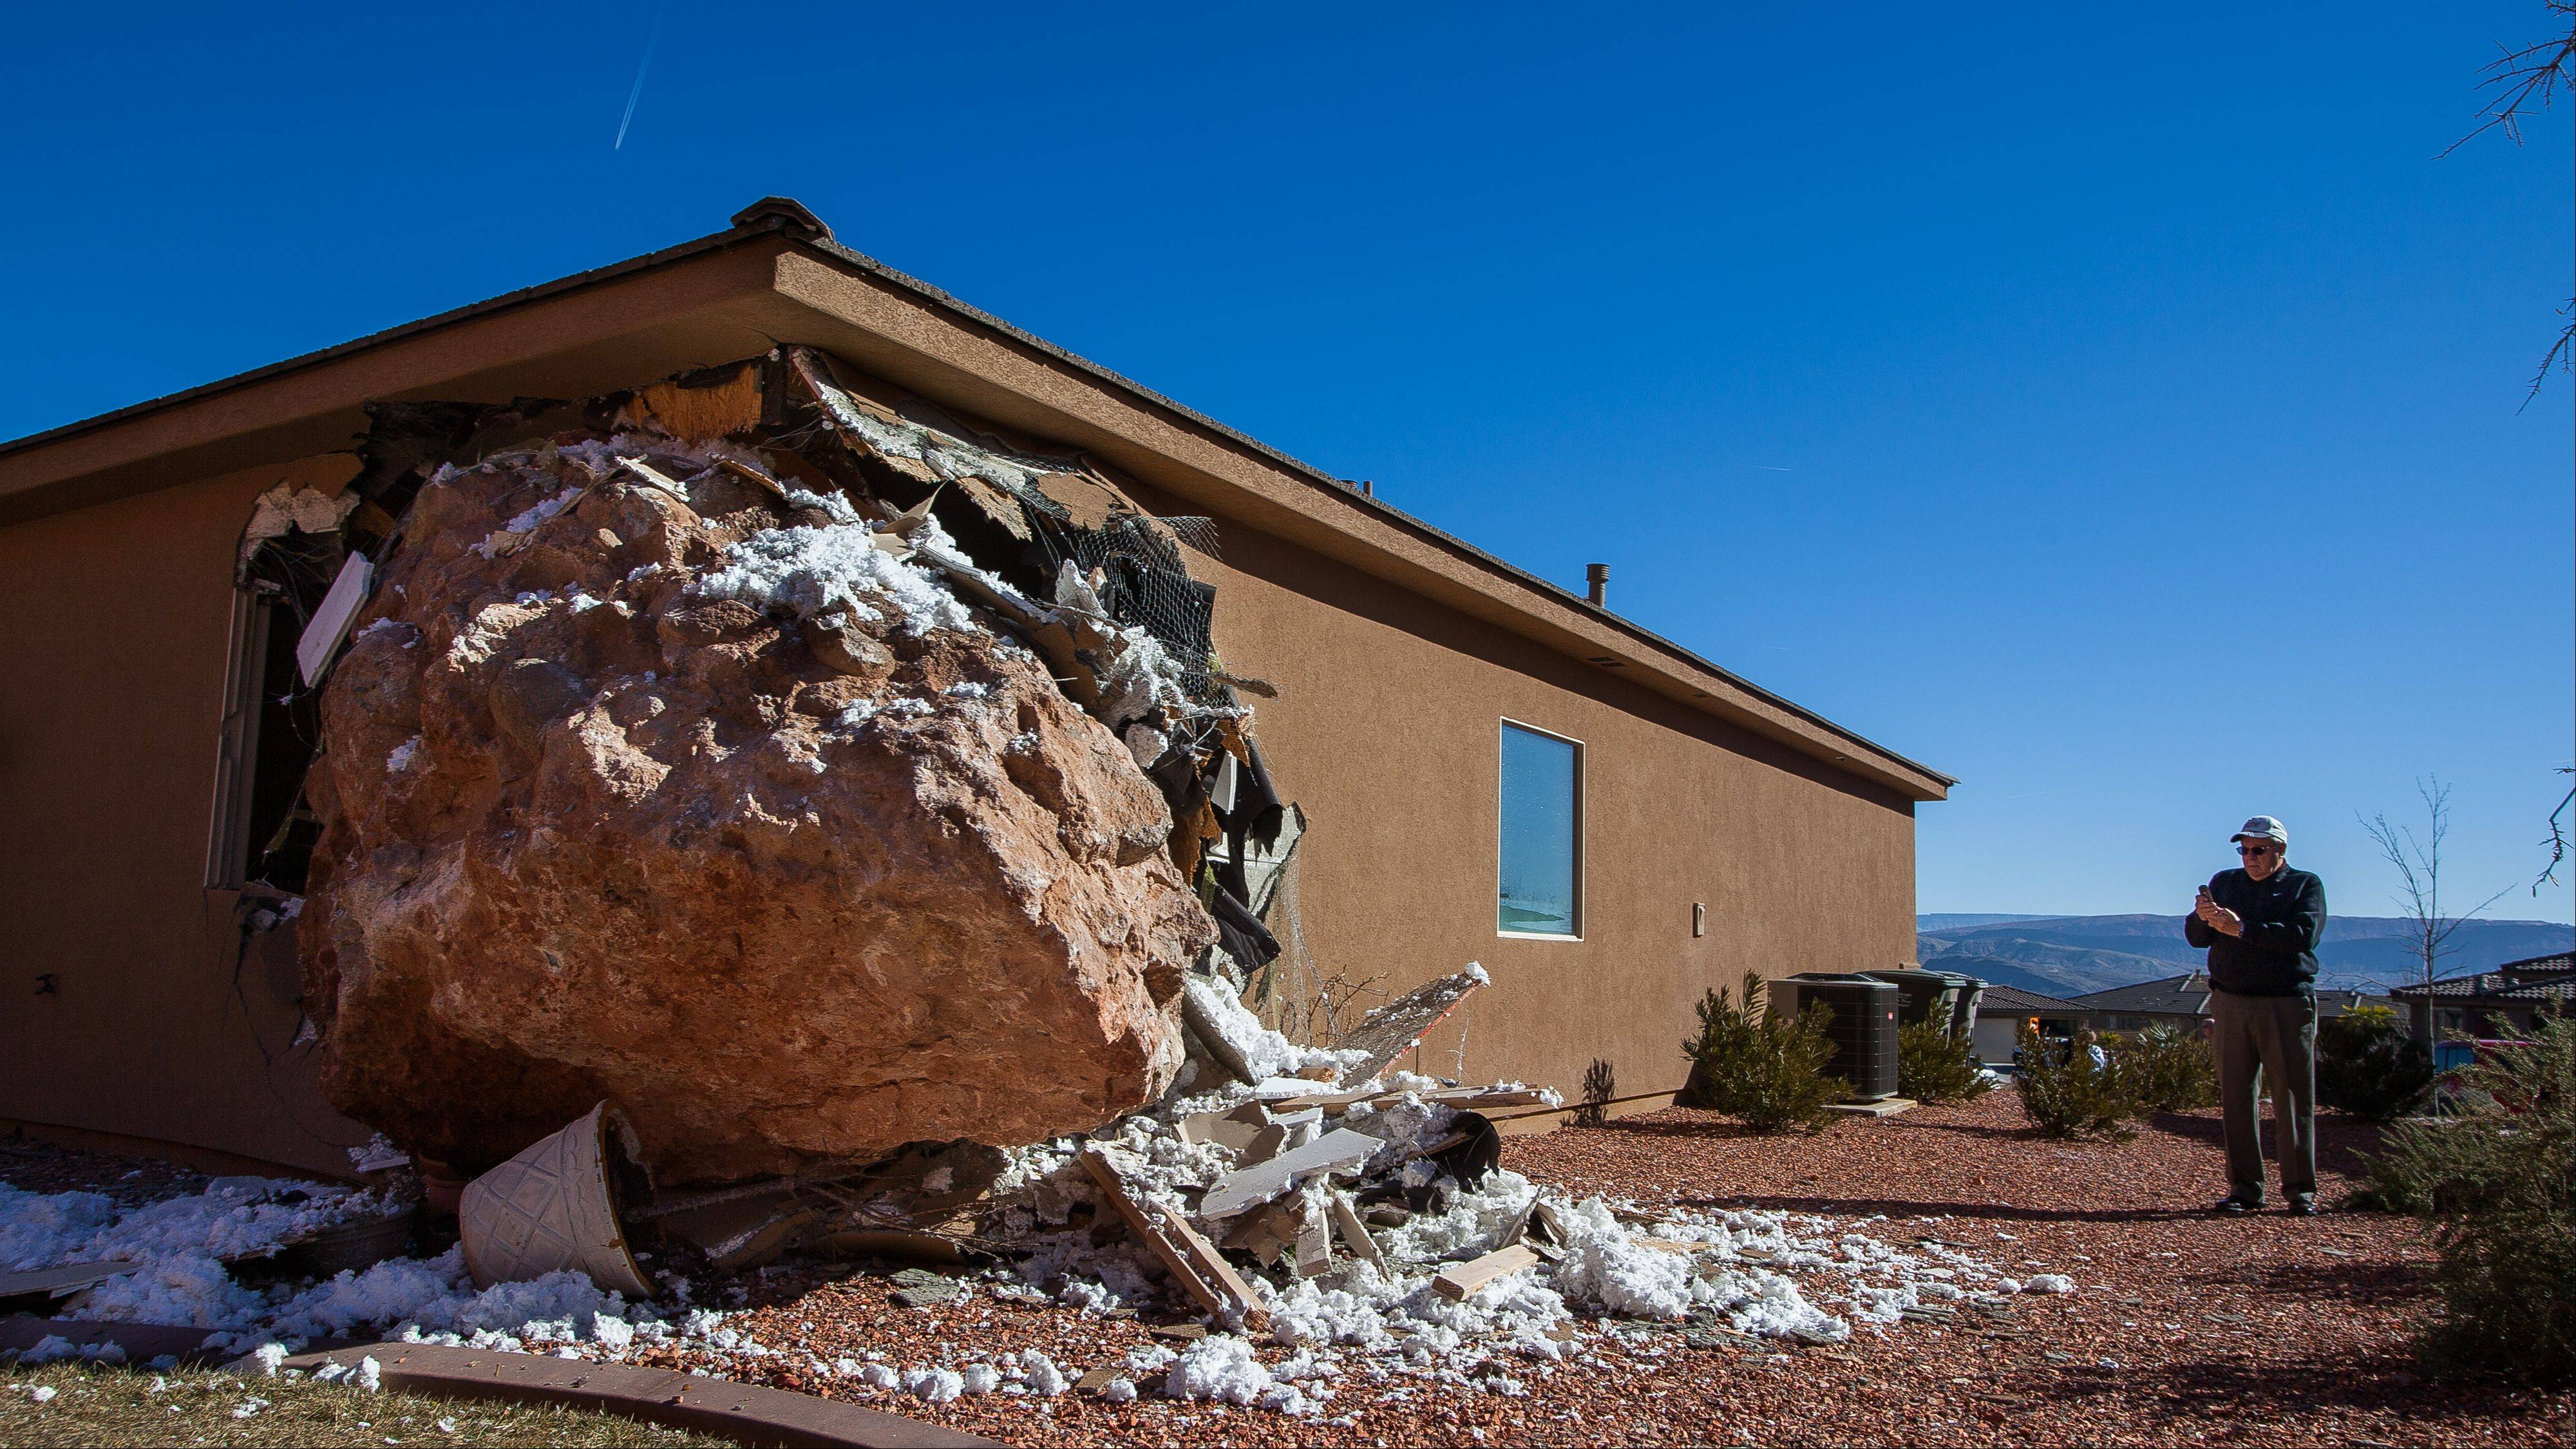 A bystander photographs a 12-by-9-foot boulder as it rests in the master bedroom of a home in St. George, Utah.